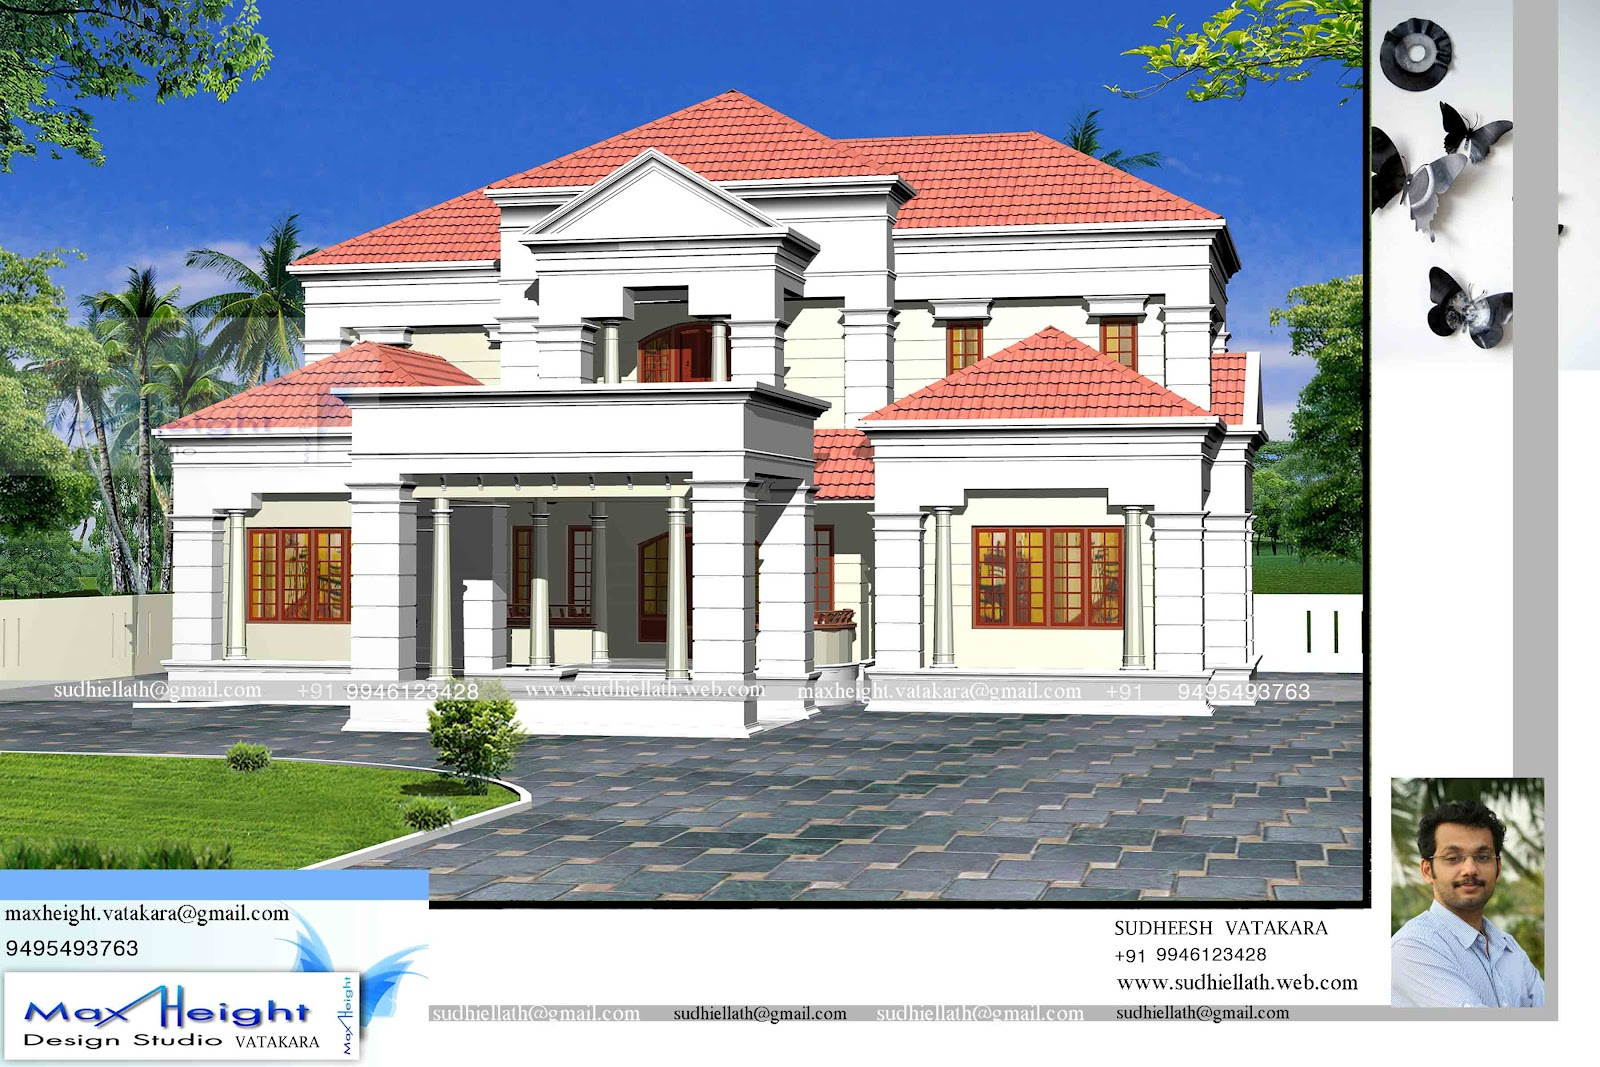 Home Design Software. Home Design Software On Architect Home ...